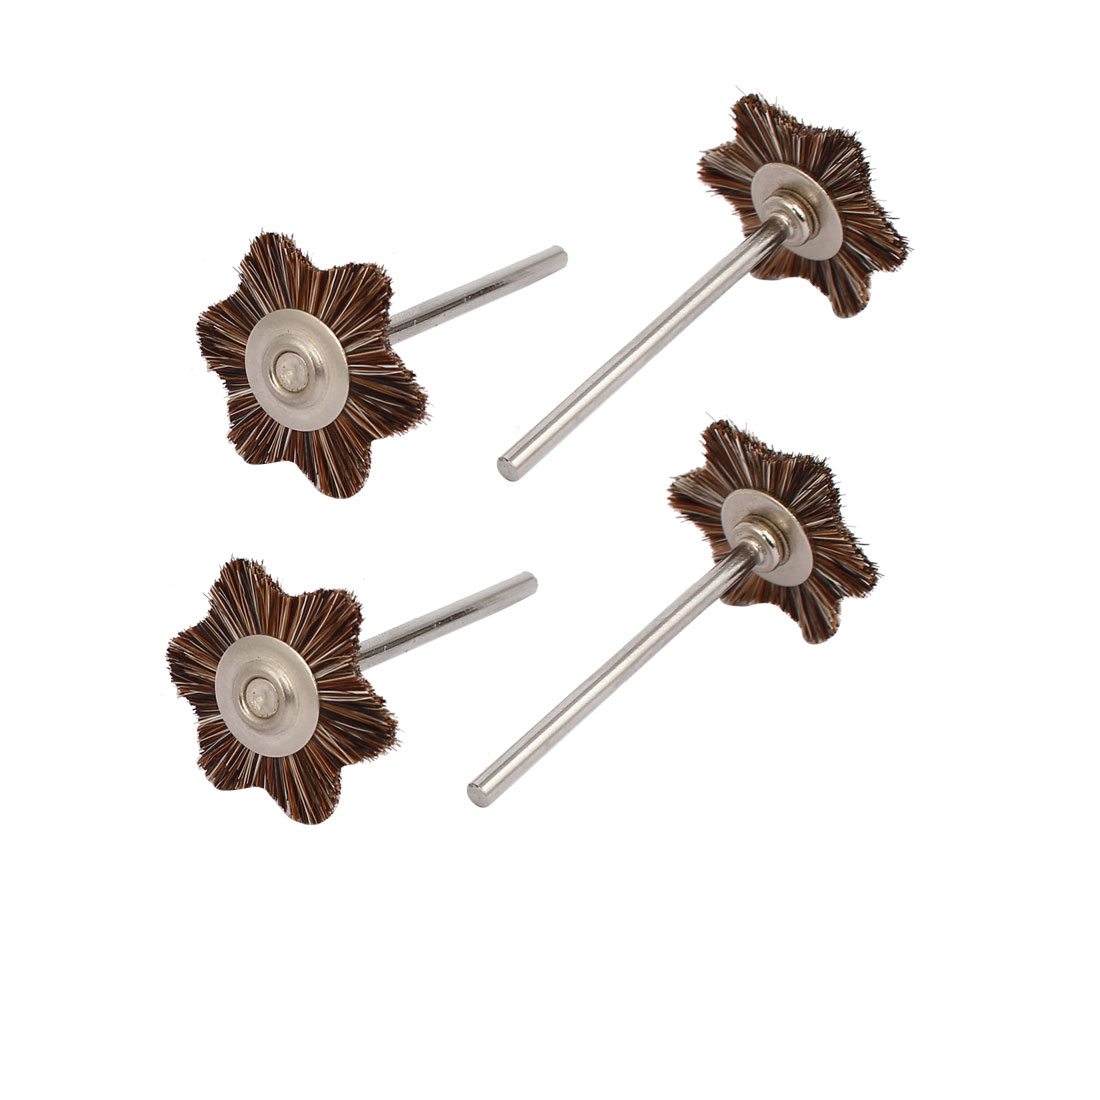 2.35mm Dia Shank Star Shaped Head Horse Hair Polishing Brushes 4pcs